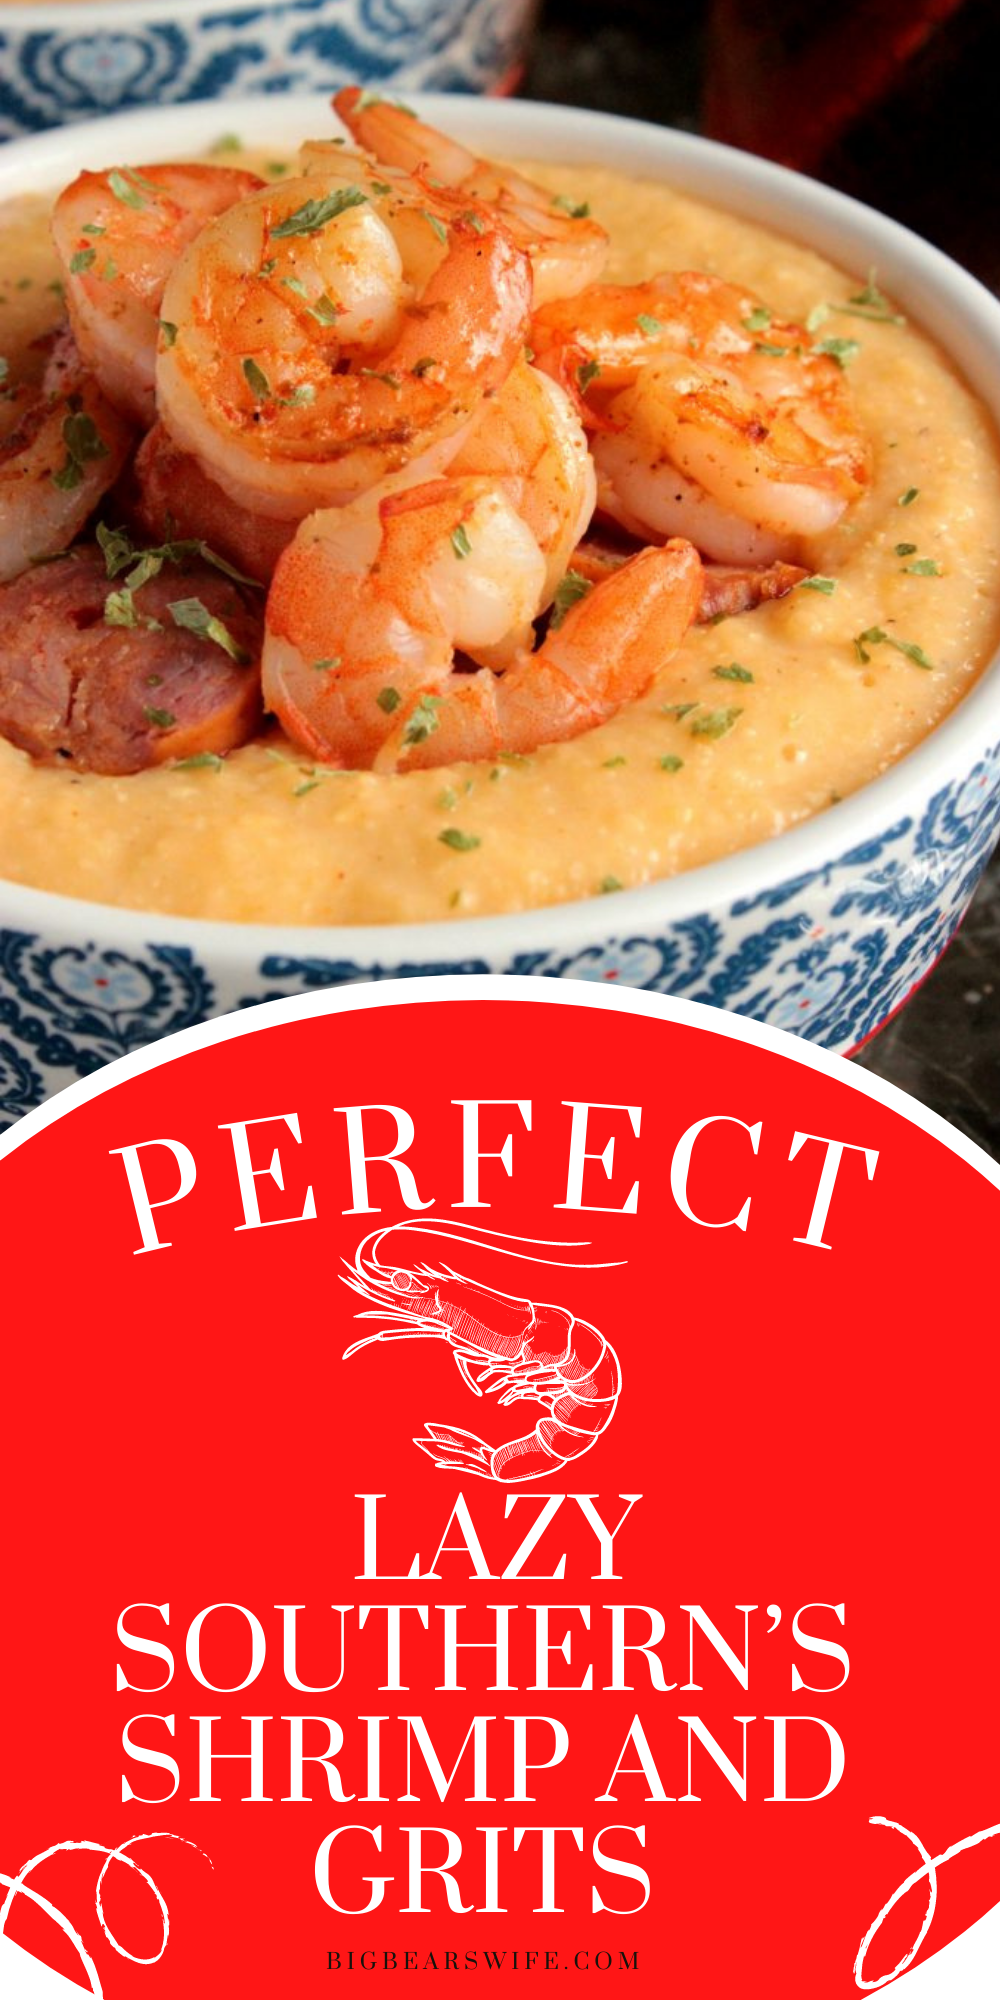 """We love shrimp and gritsbut we need quick and simple after work!This is the version that we love when we're in a hurry or when we've had a super long day at work! We call this, """"The Lazy Southern's Shrimp and Grits"""". via @bigbearswife"""